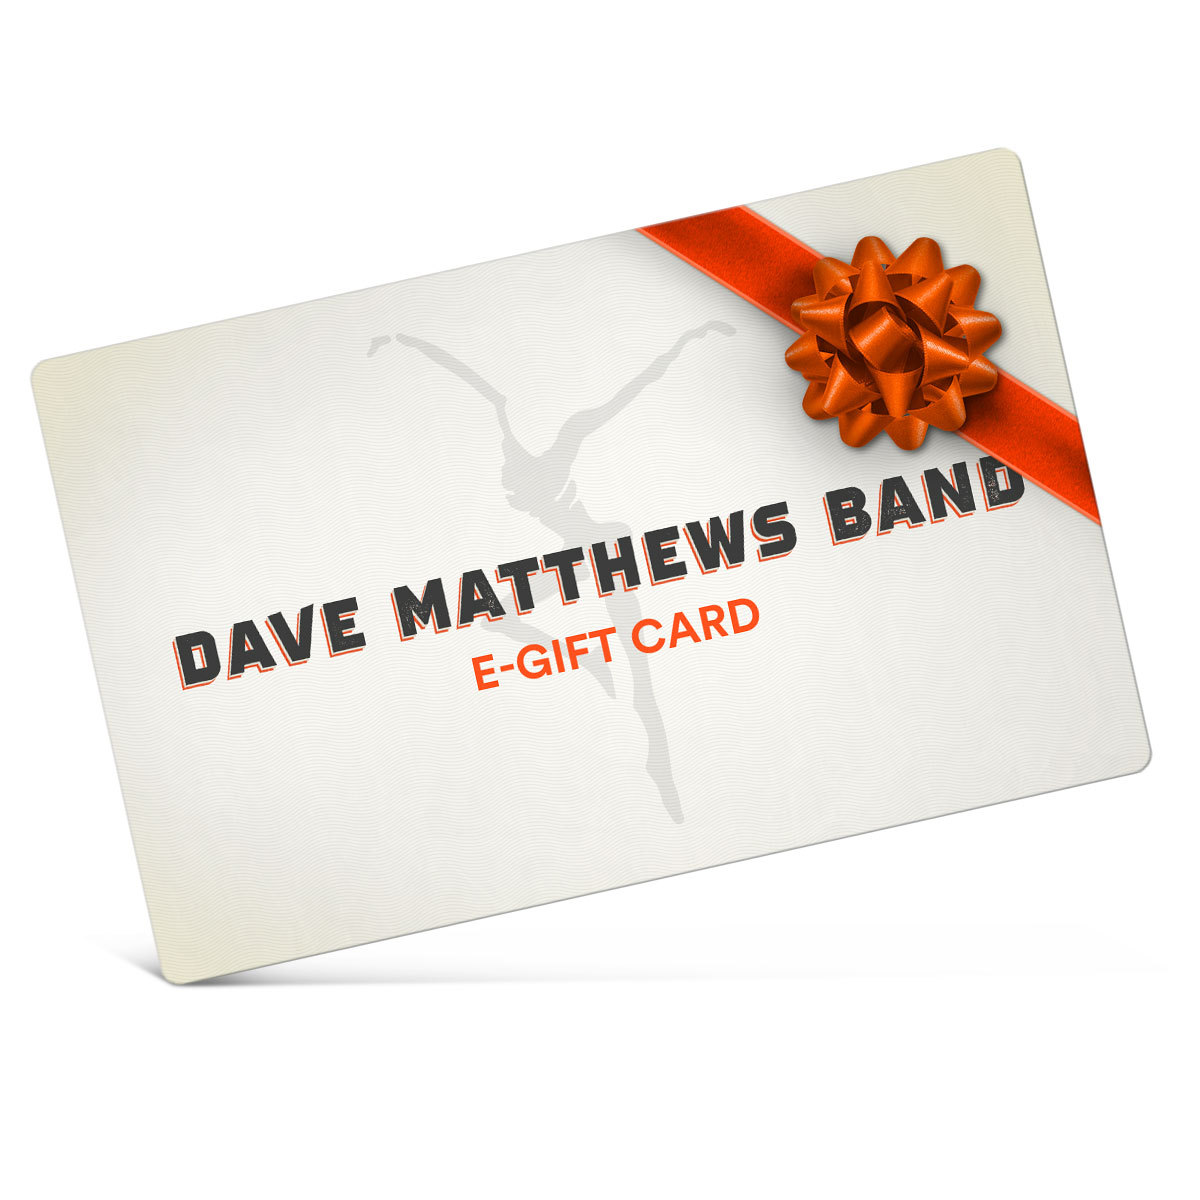 Dave Matthews Band Electronic Gift Certificate